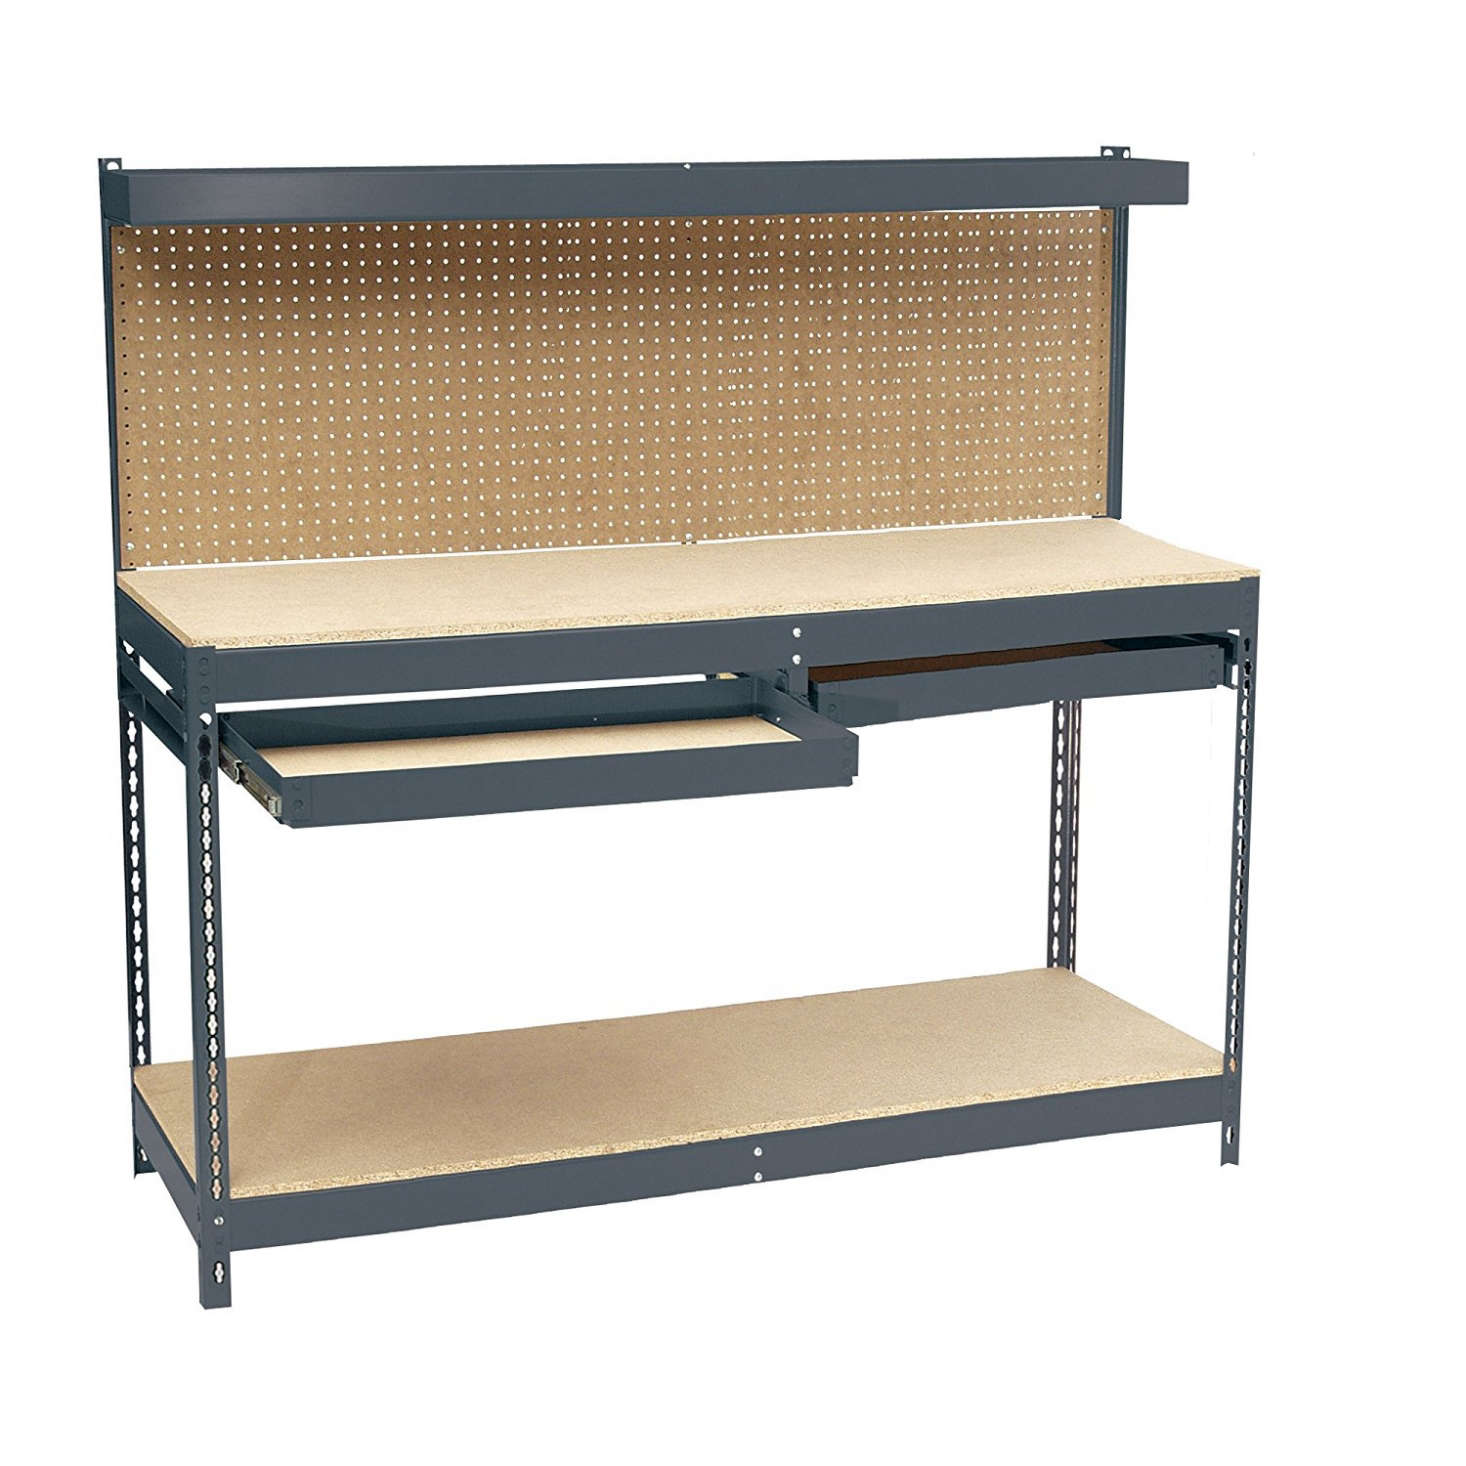 The Edsal Heavy Duty Steel Workbench doubles as a counter and storage. It features a  sc 1 st  Gardenista & 5 Quick Fixes: Garage Storage Units - Gardenista